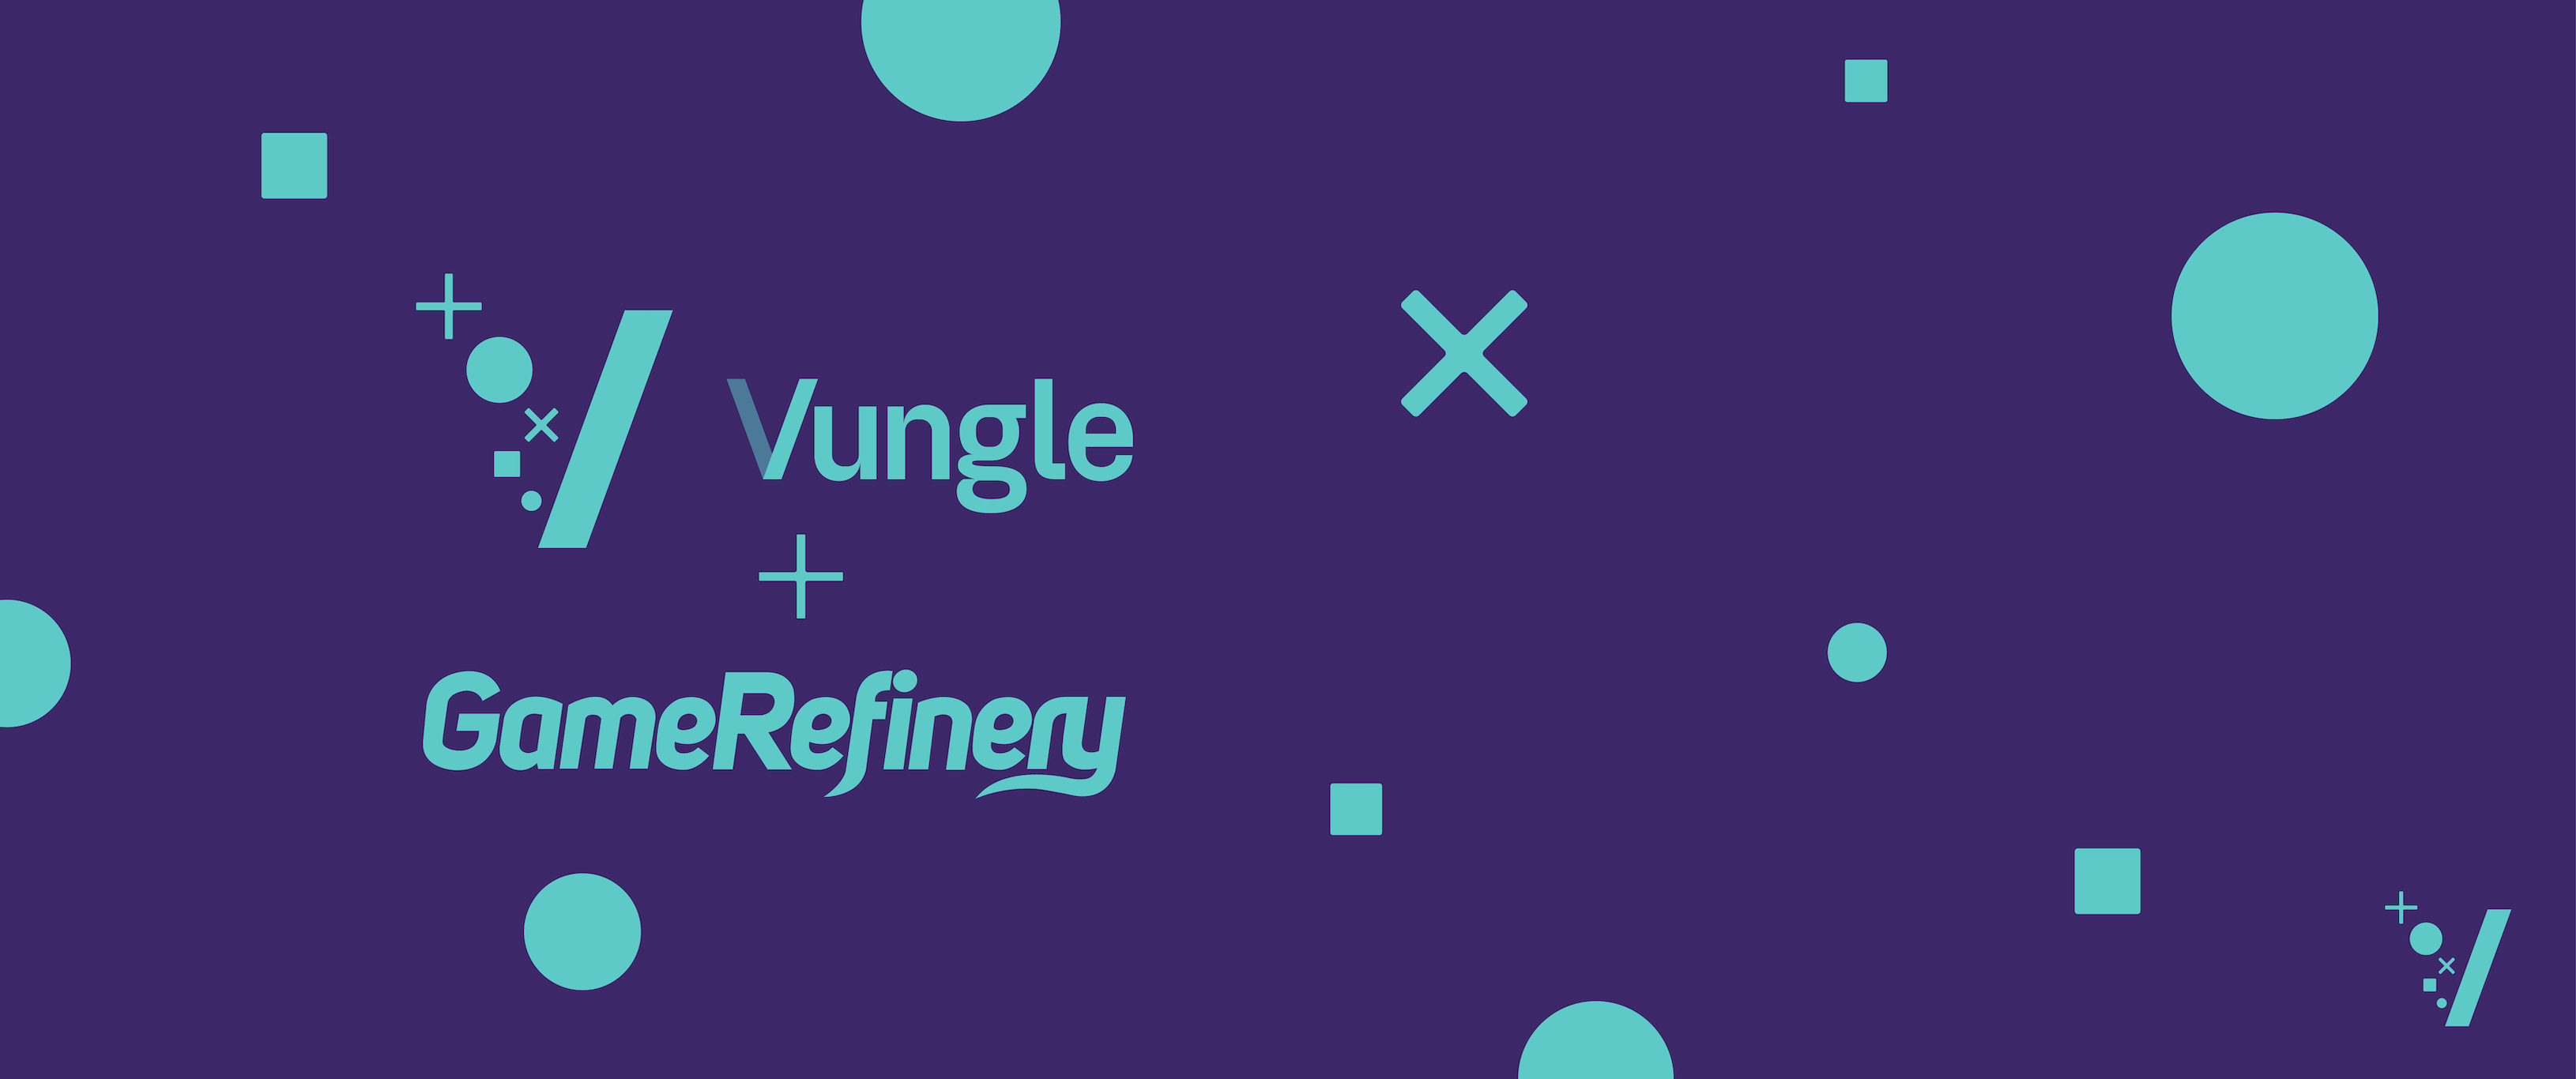 Vungle acquires GameRefinery Fresh from Vungle